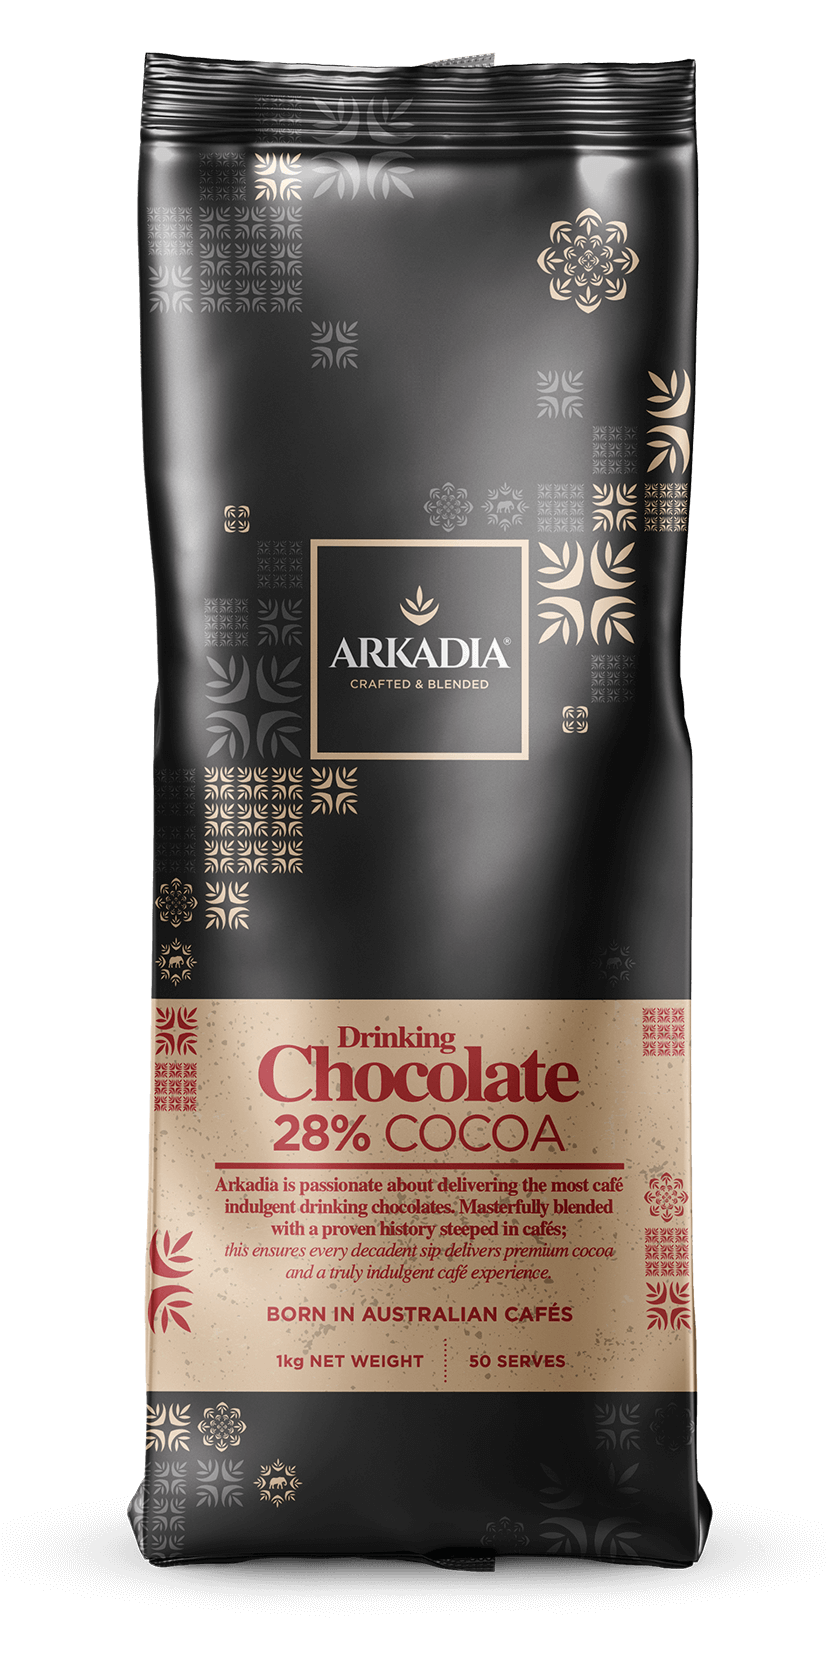 Arkadia Drinking Chocolate 28% Cocoa